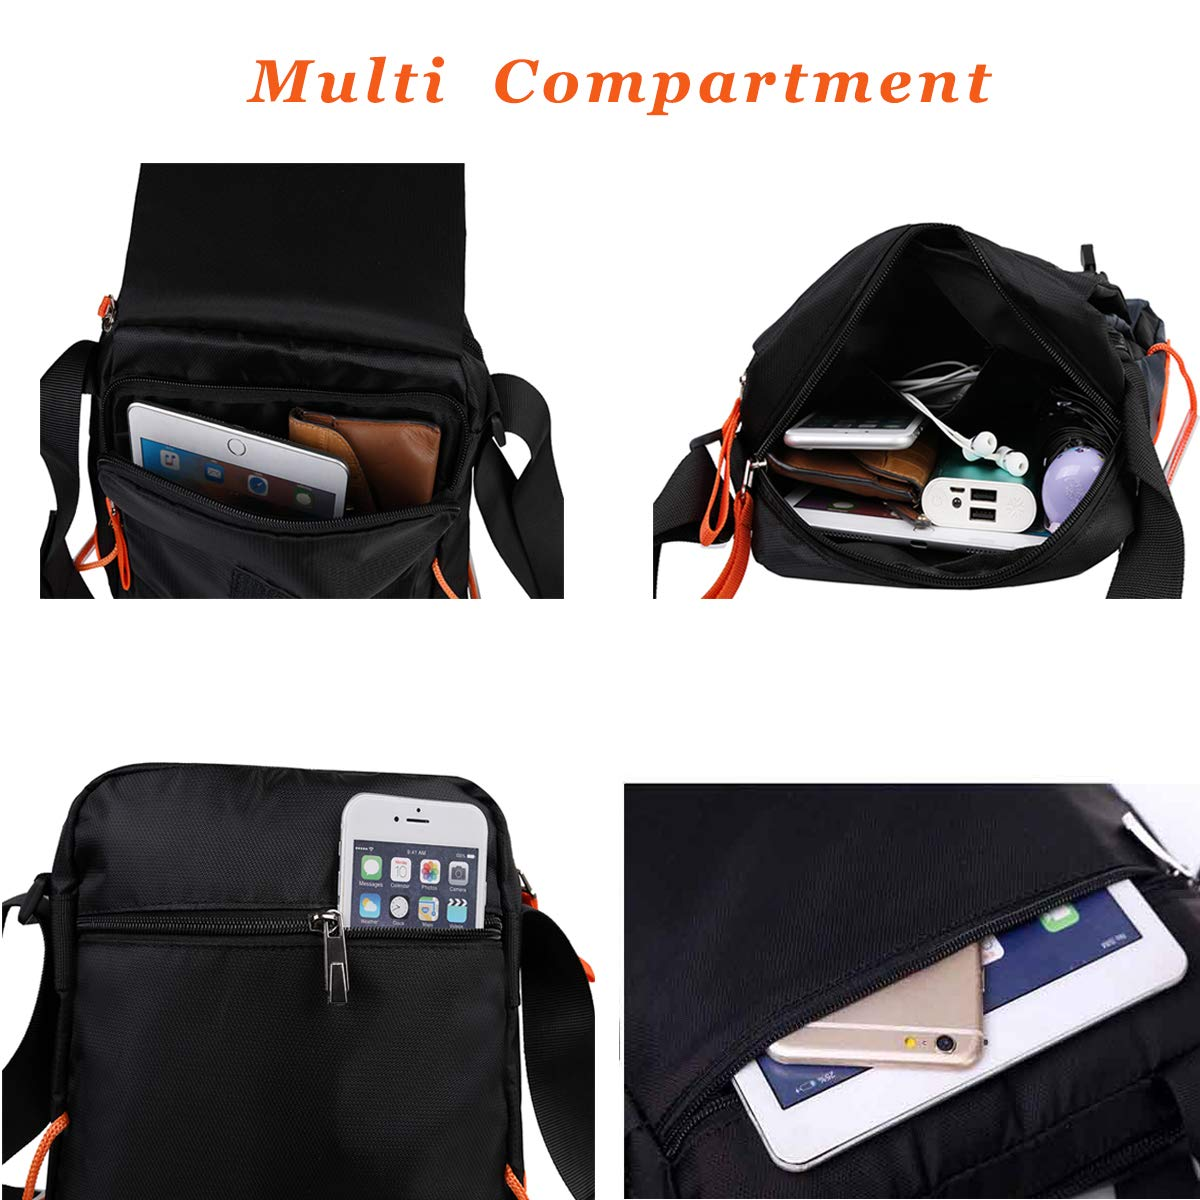 9b3a632583 Amazon.com  JAKAGO Waterproof Messenger Bag Shoulder Crossbody Bag Mobile  Phone Pouch Passport Holder Mens Purse Bag 10.1 inch Tablet Bag Work Field  Bag for ...